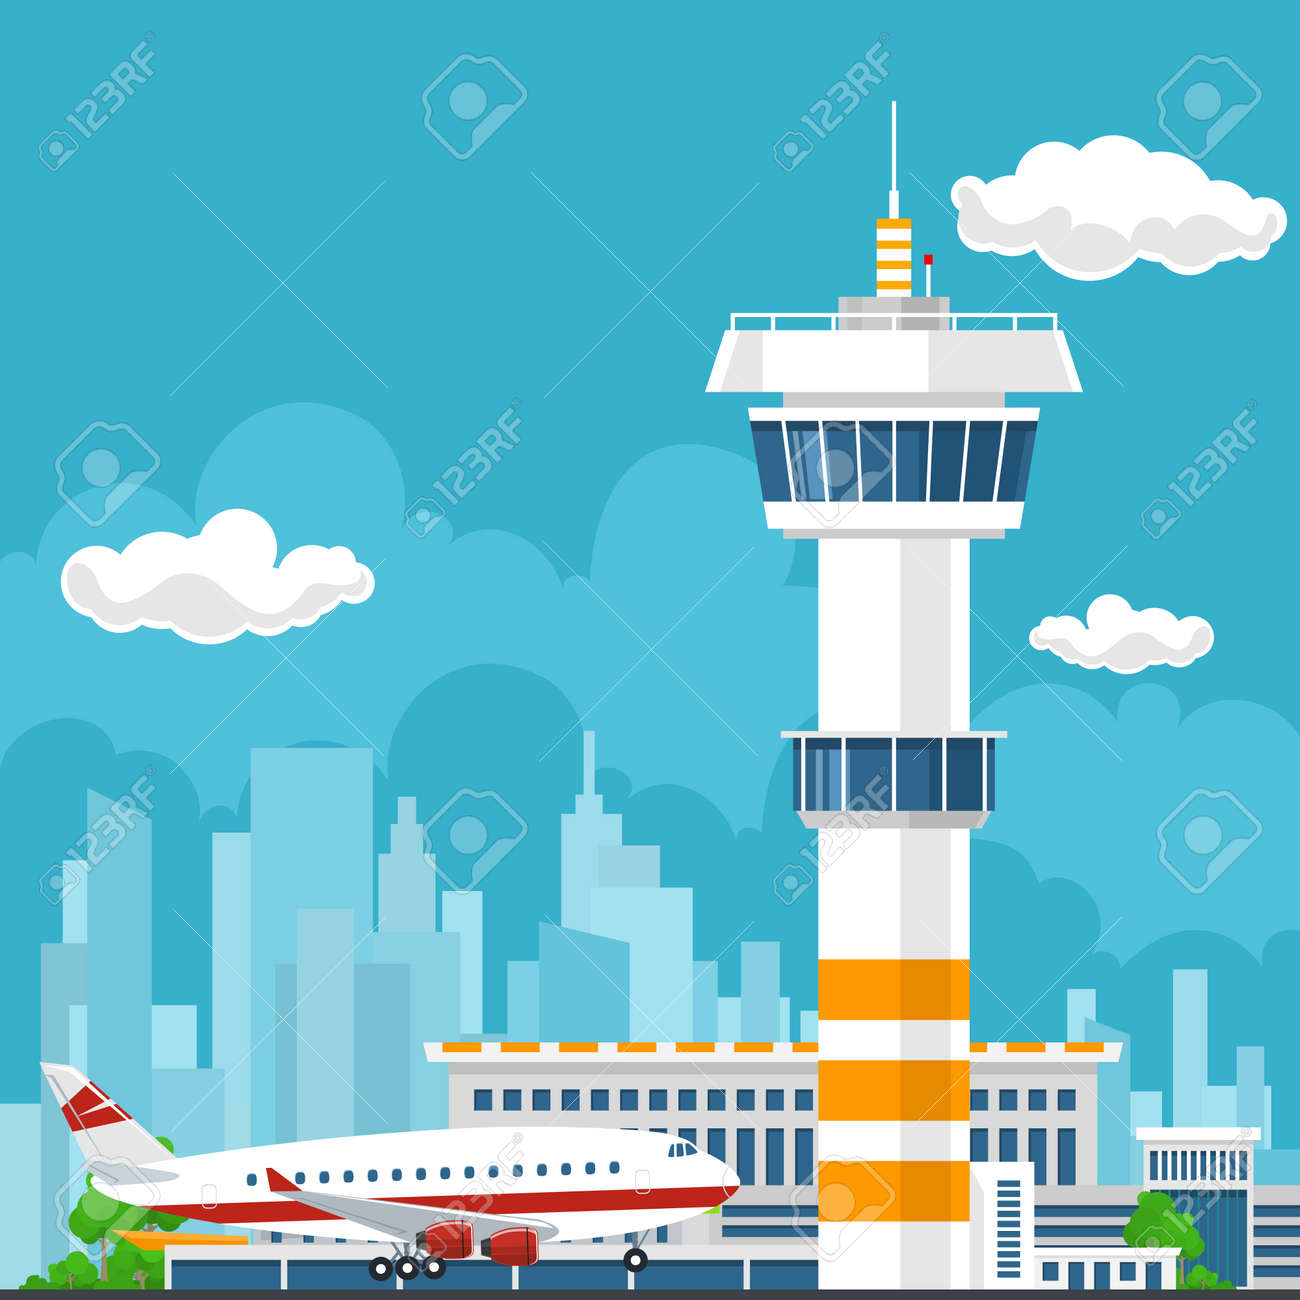 Arrivals at Airport, Control Tower and Airplane on the Background of the City, Travel and Tourism Concept , Air Travel and Transportation, Vector Illustration - 57689913